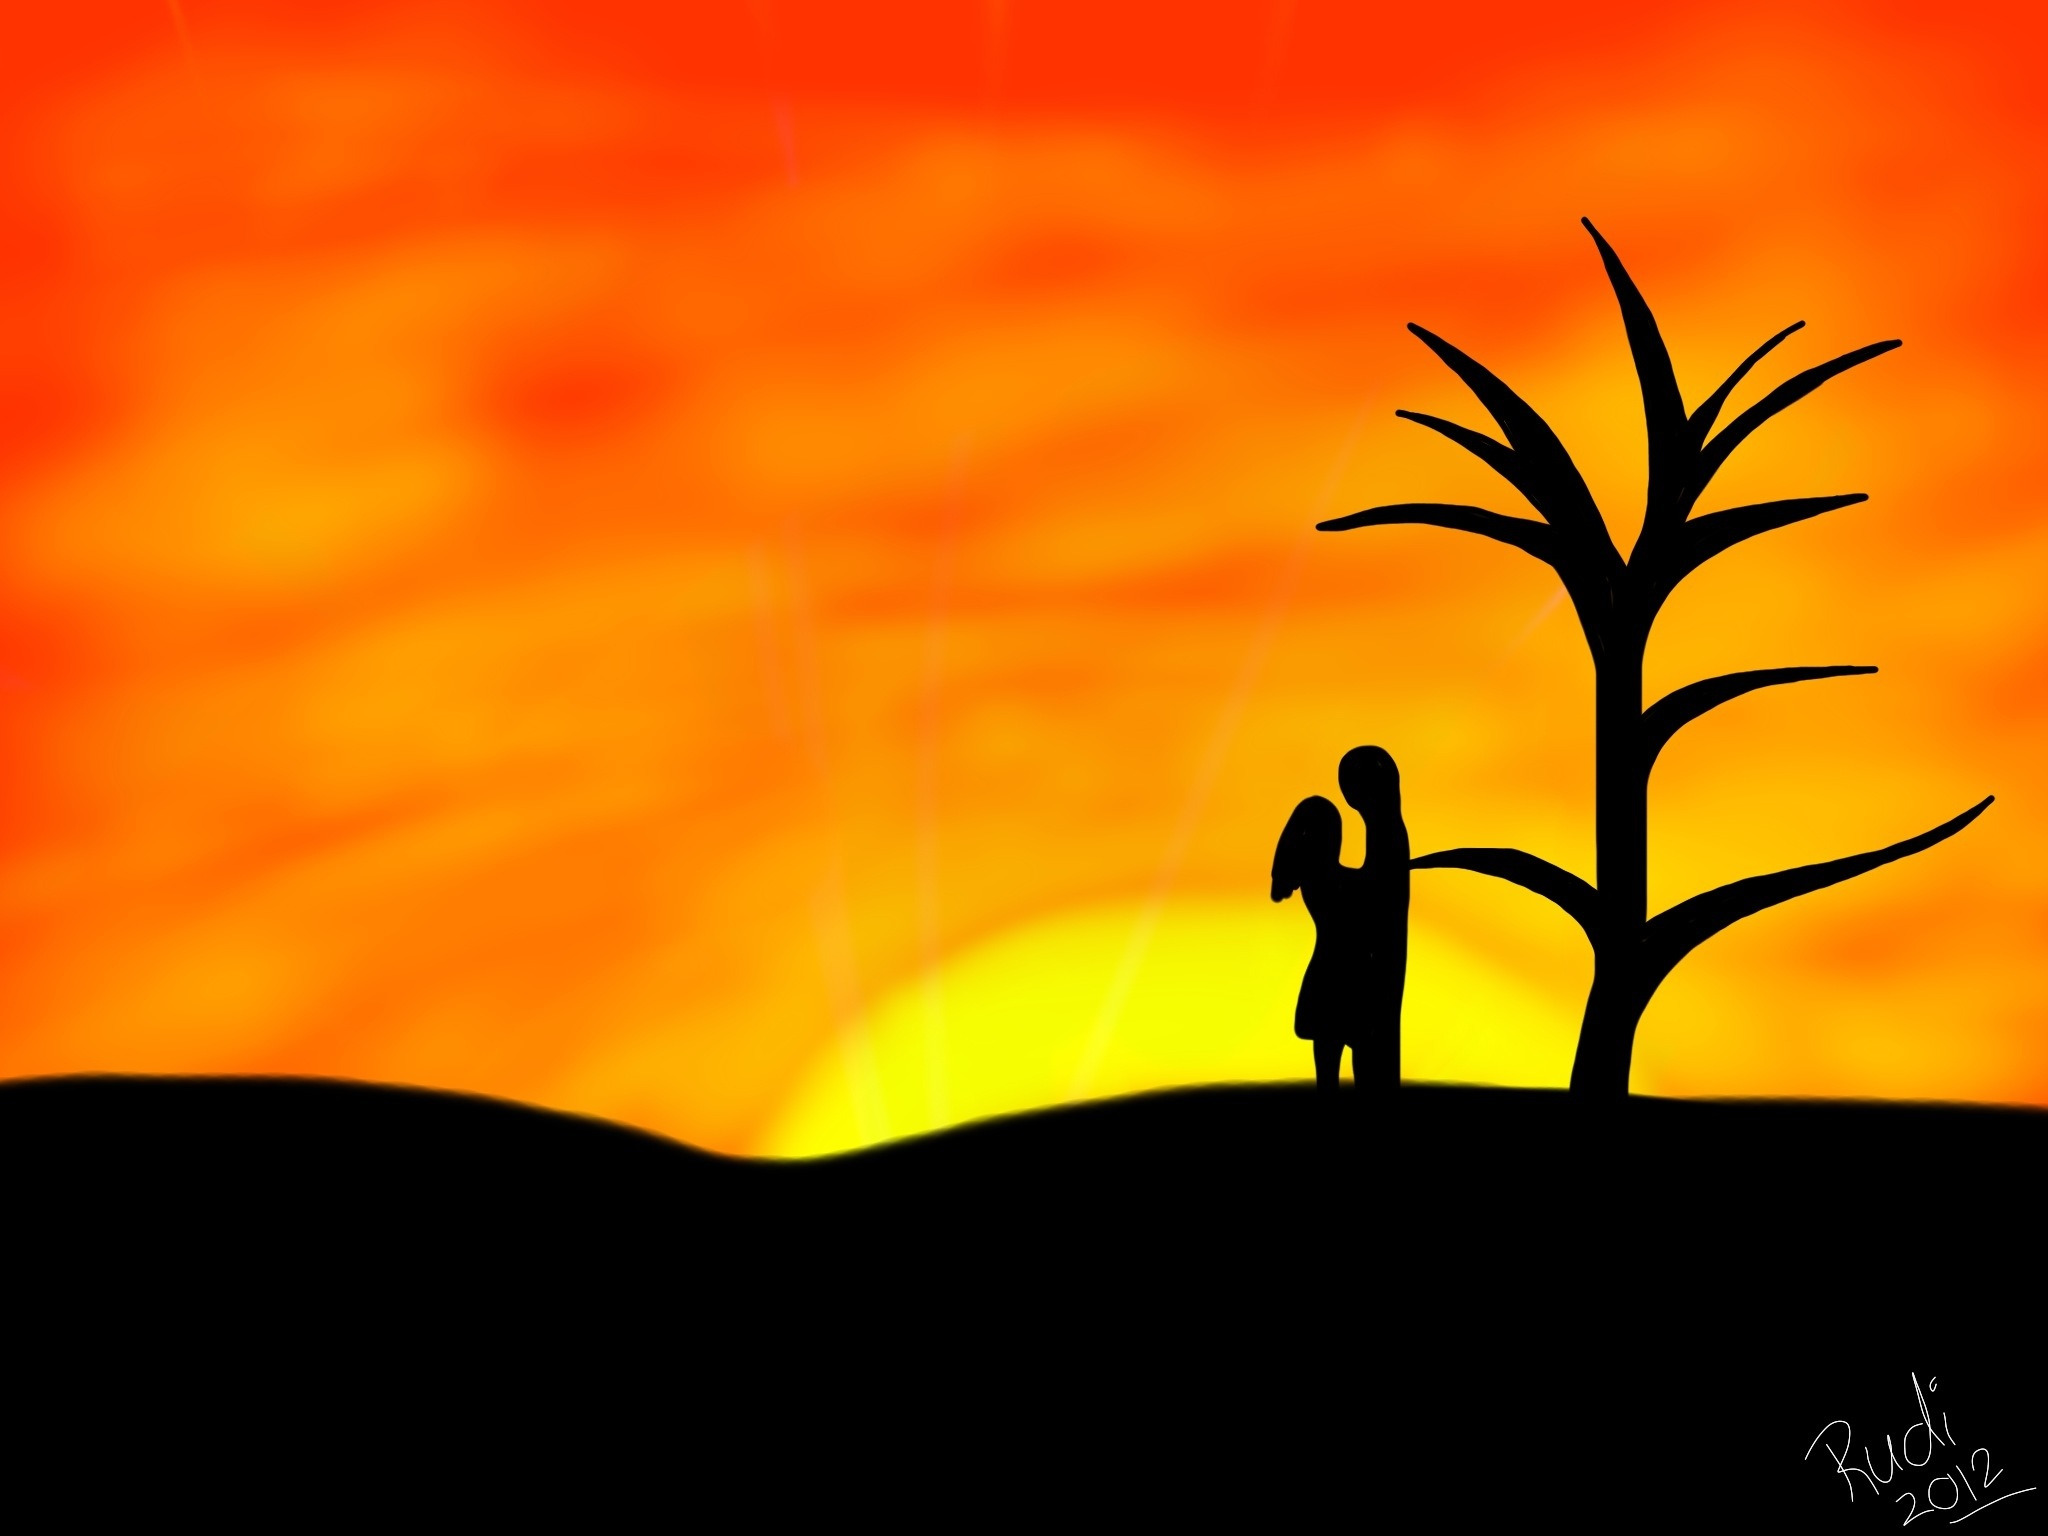 2048x1536 Lovers Sunset Ipad Art And Photography